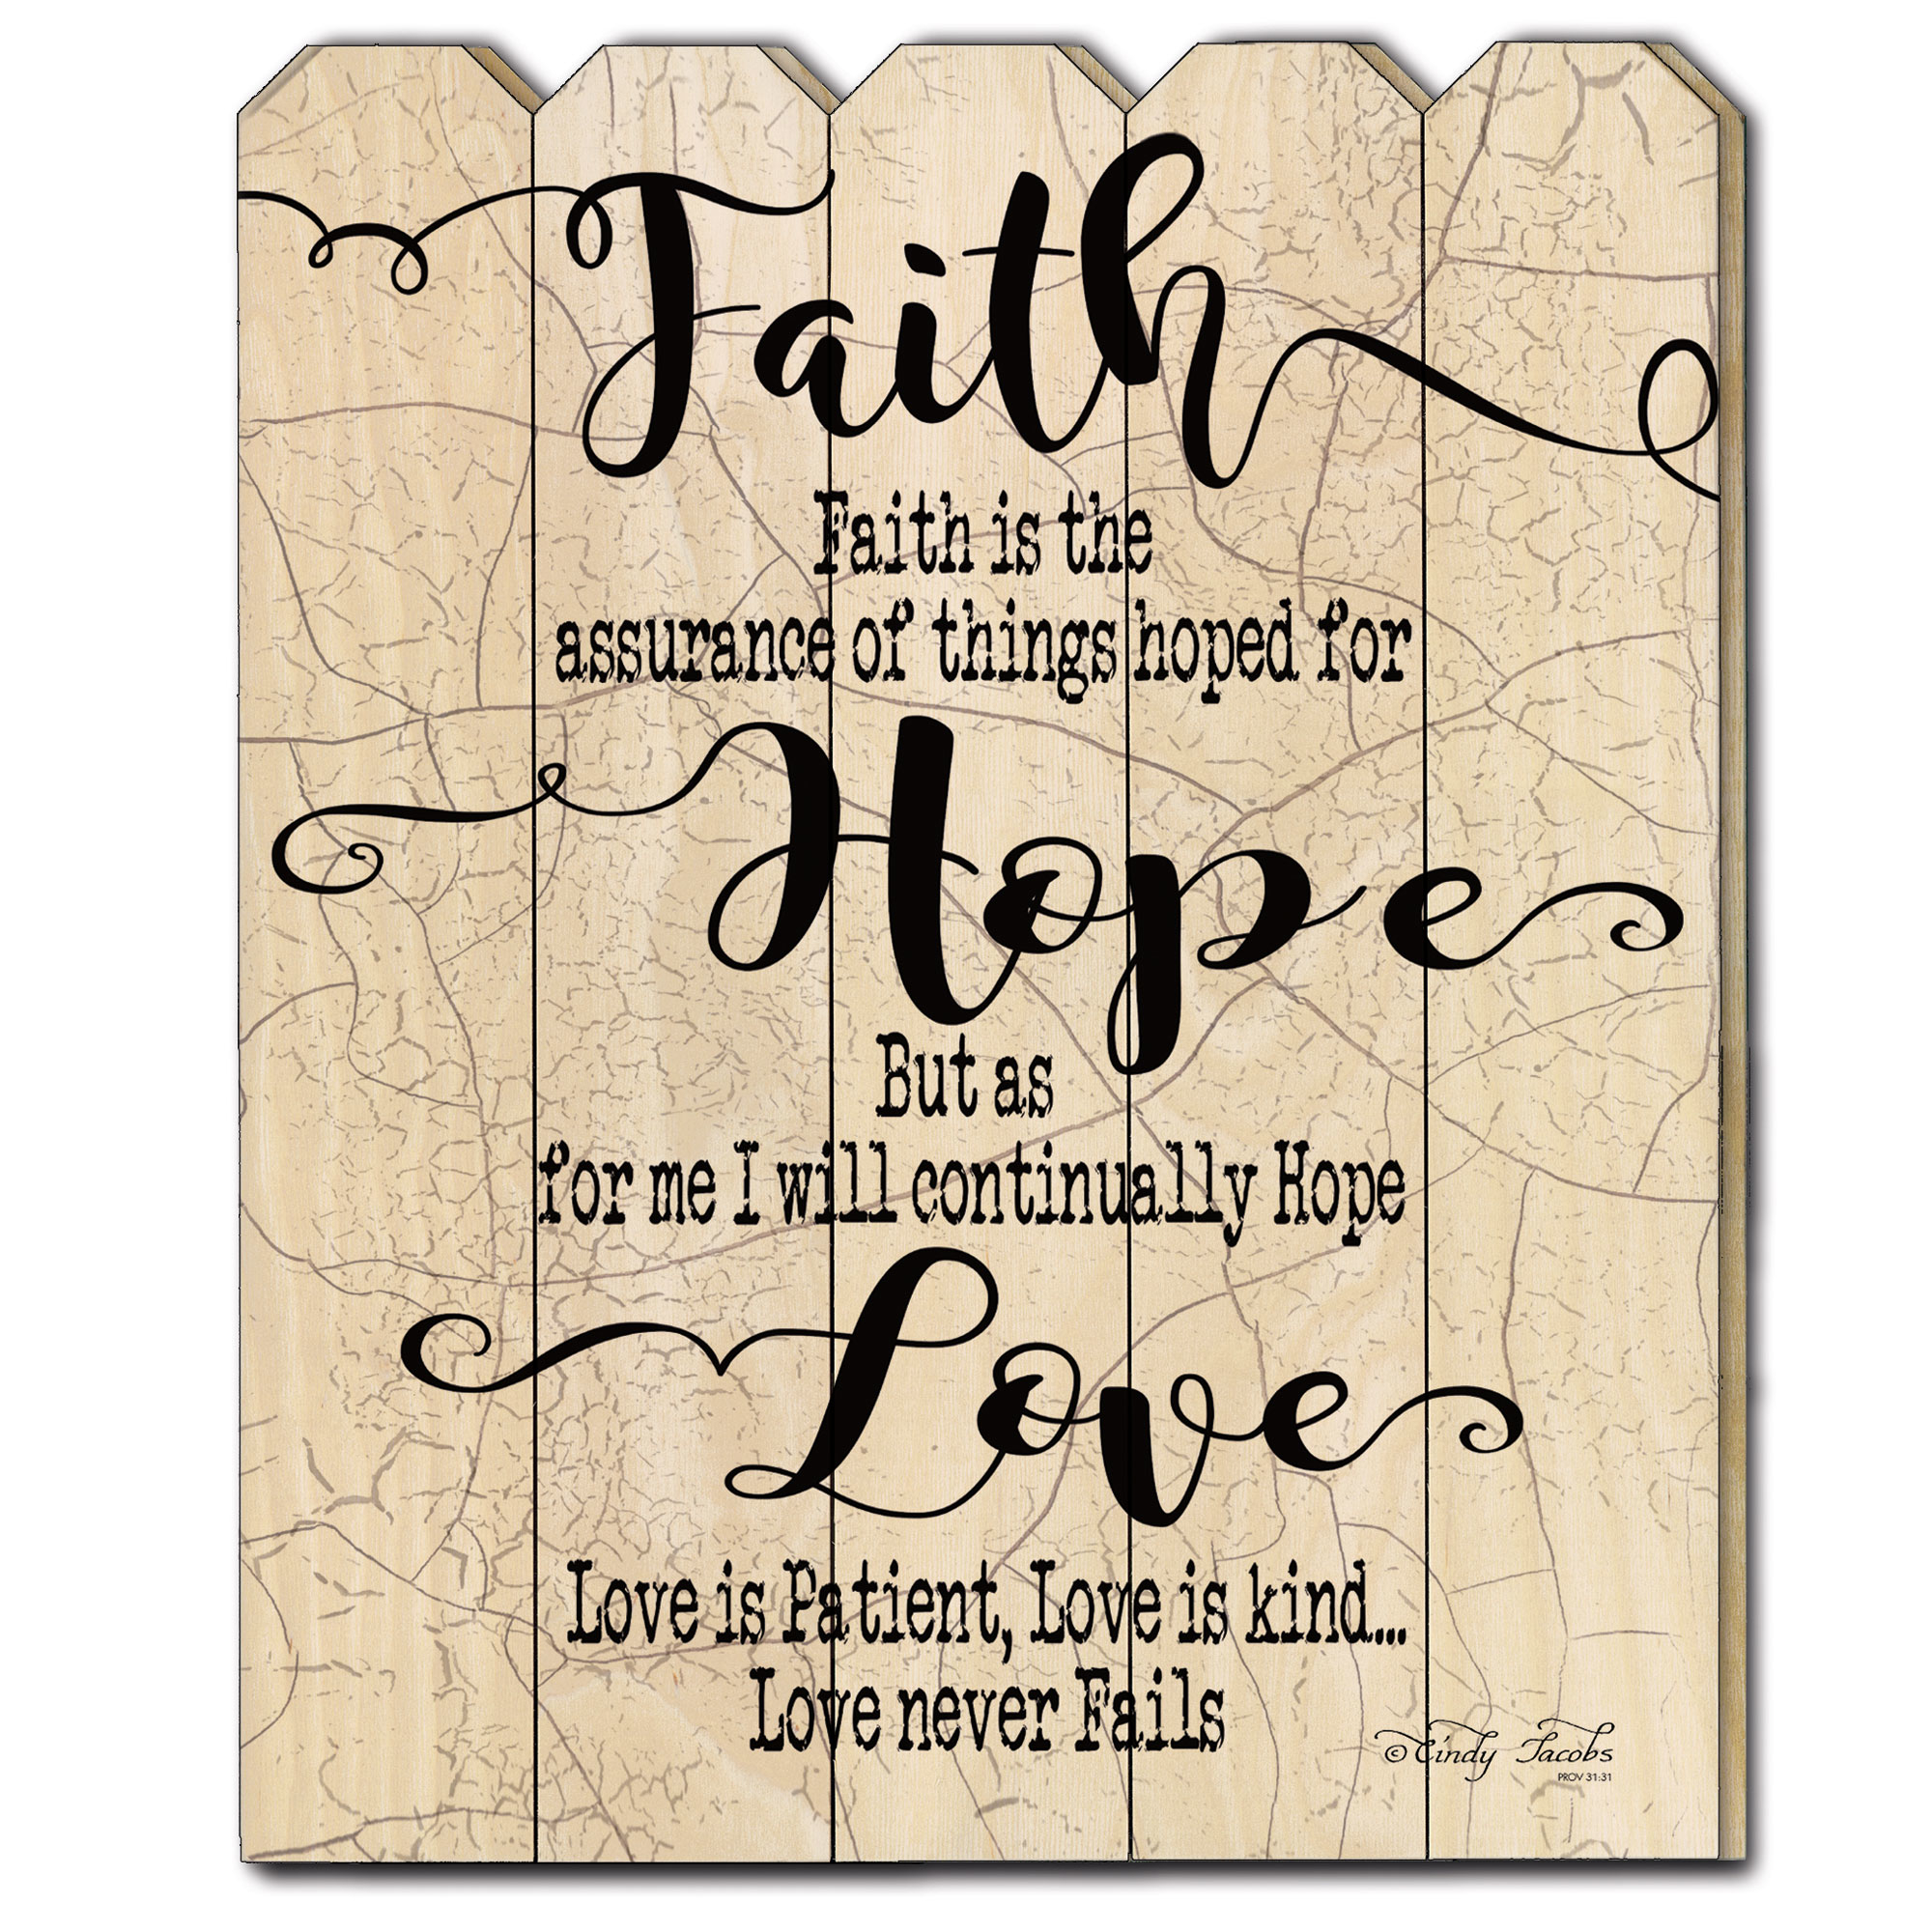 ""\""""Faith Hope Love"""" by Cindy Jacobs, Printed Wall Art on a Wood Picket Fence""2000|2000|?|en|2|b672fe28e63b37e1a91ebafb9404db9c|False|UNLIKELY|0.3629370629787445